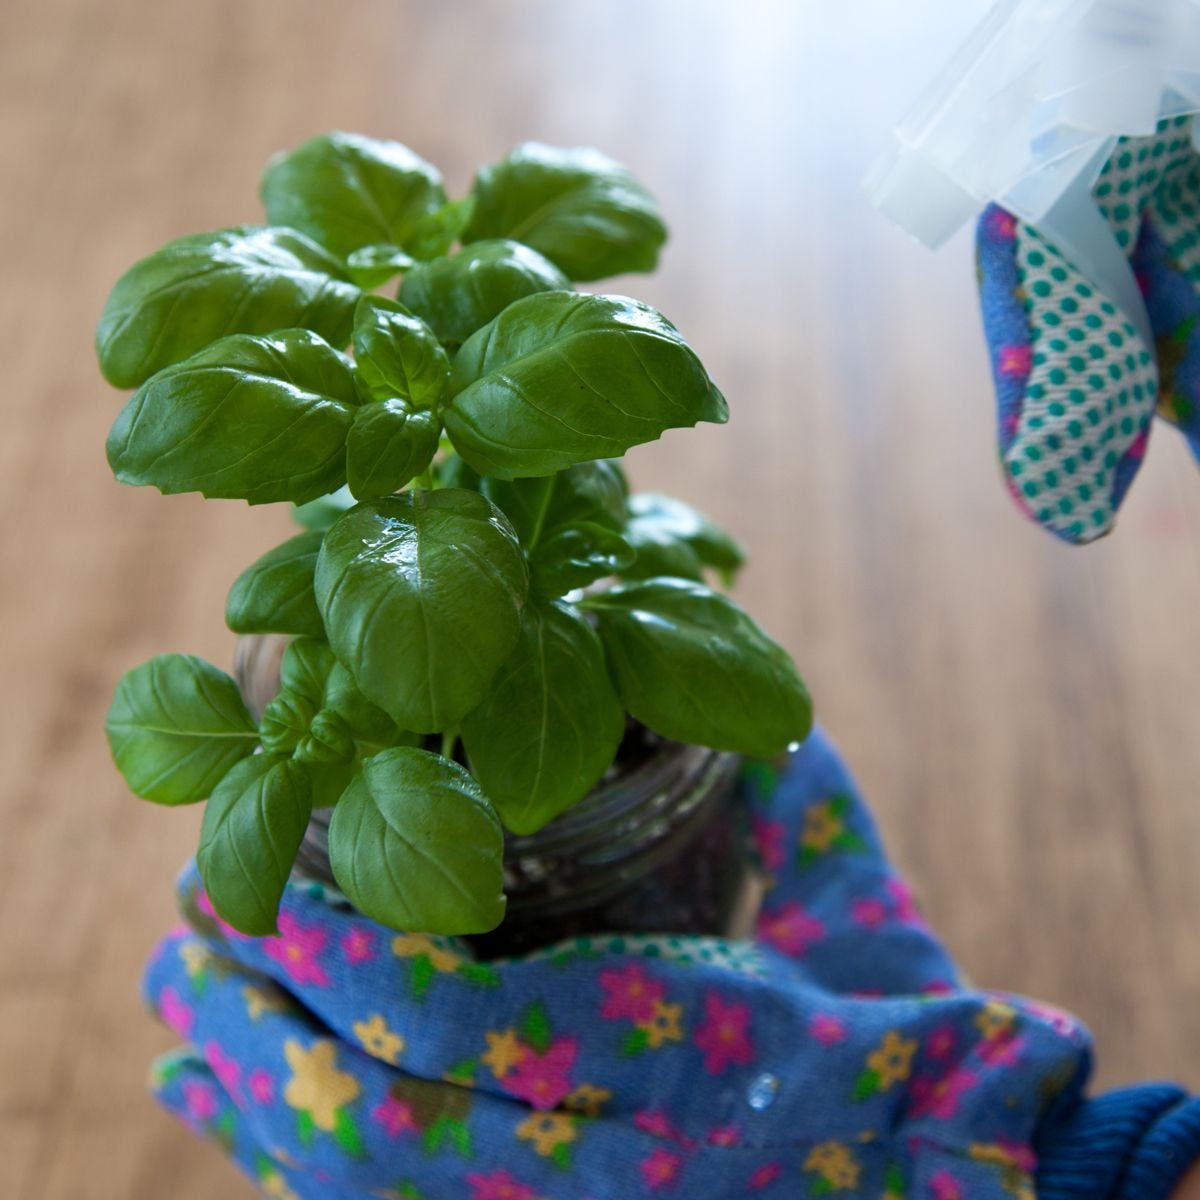 DIY Herb Care Kit: Grow basil, thyme, and rosemary in Mason Jars how to.